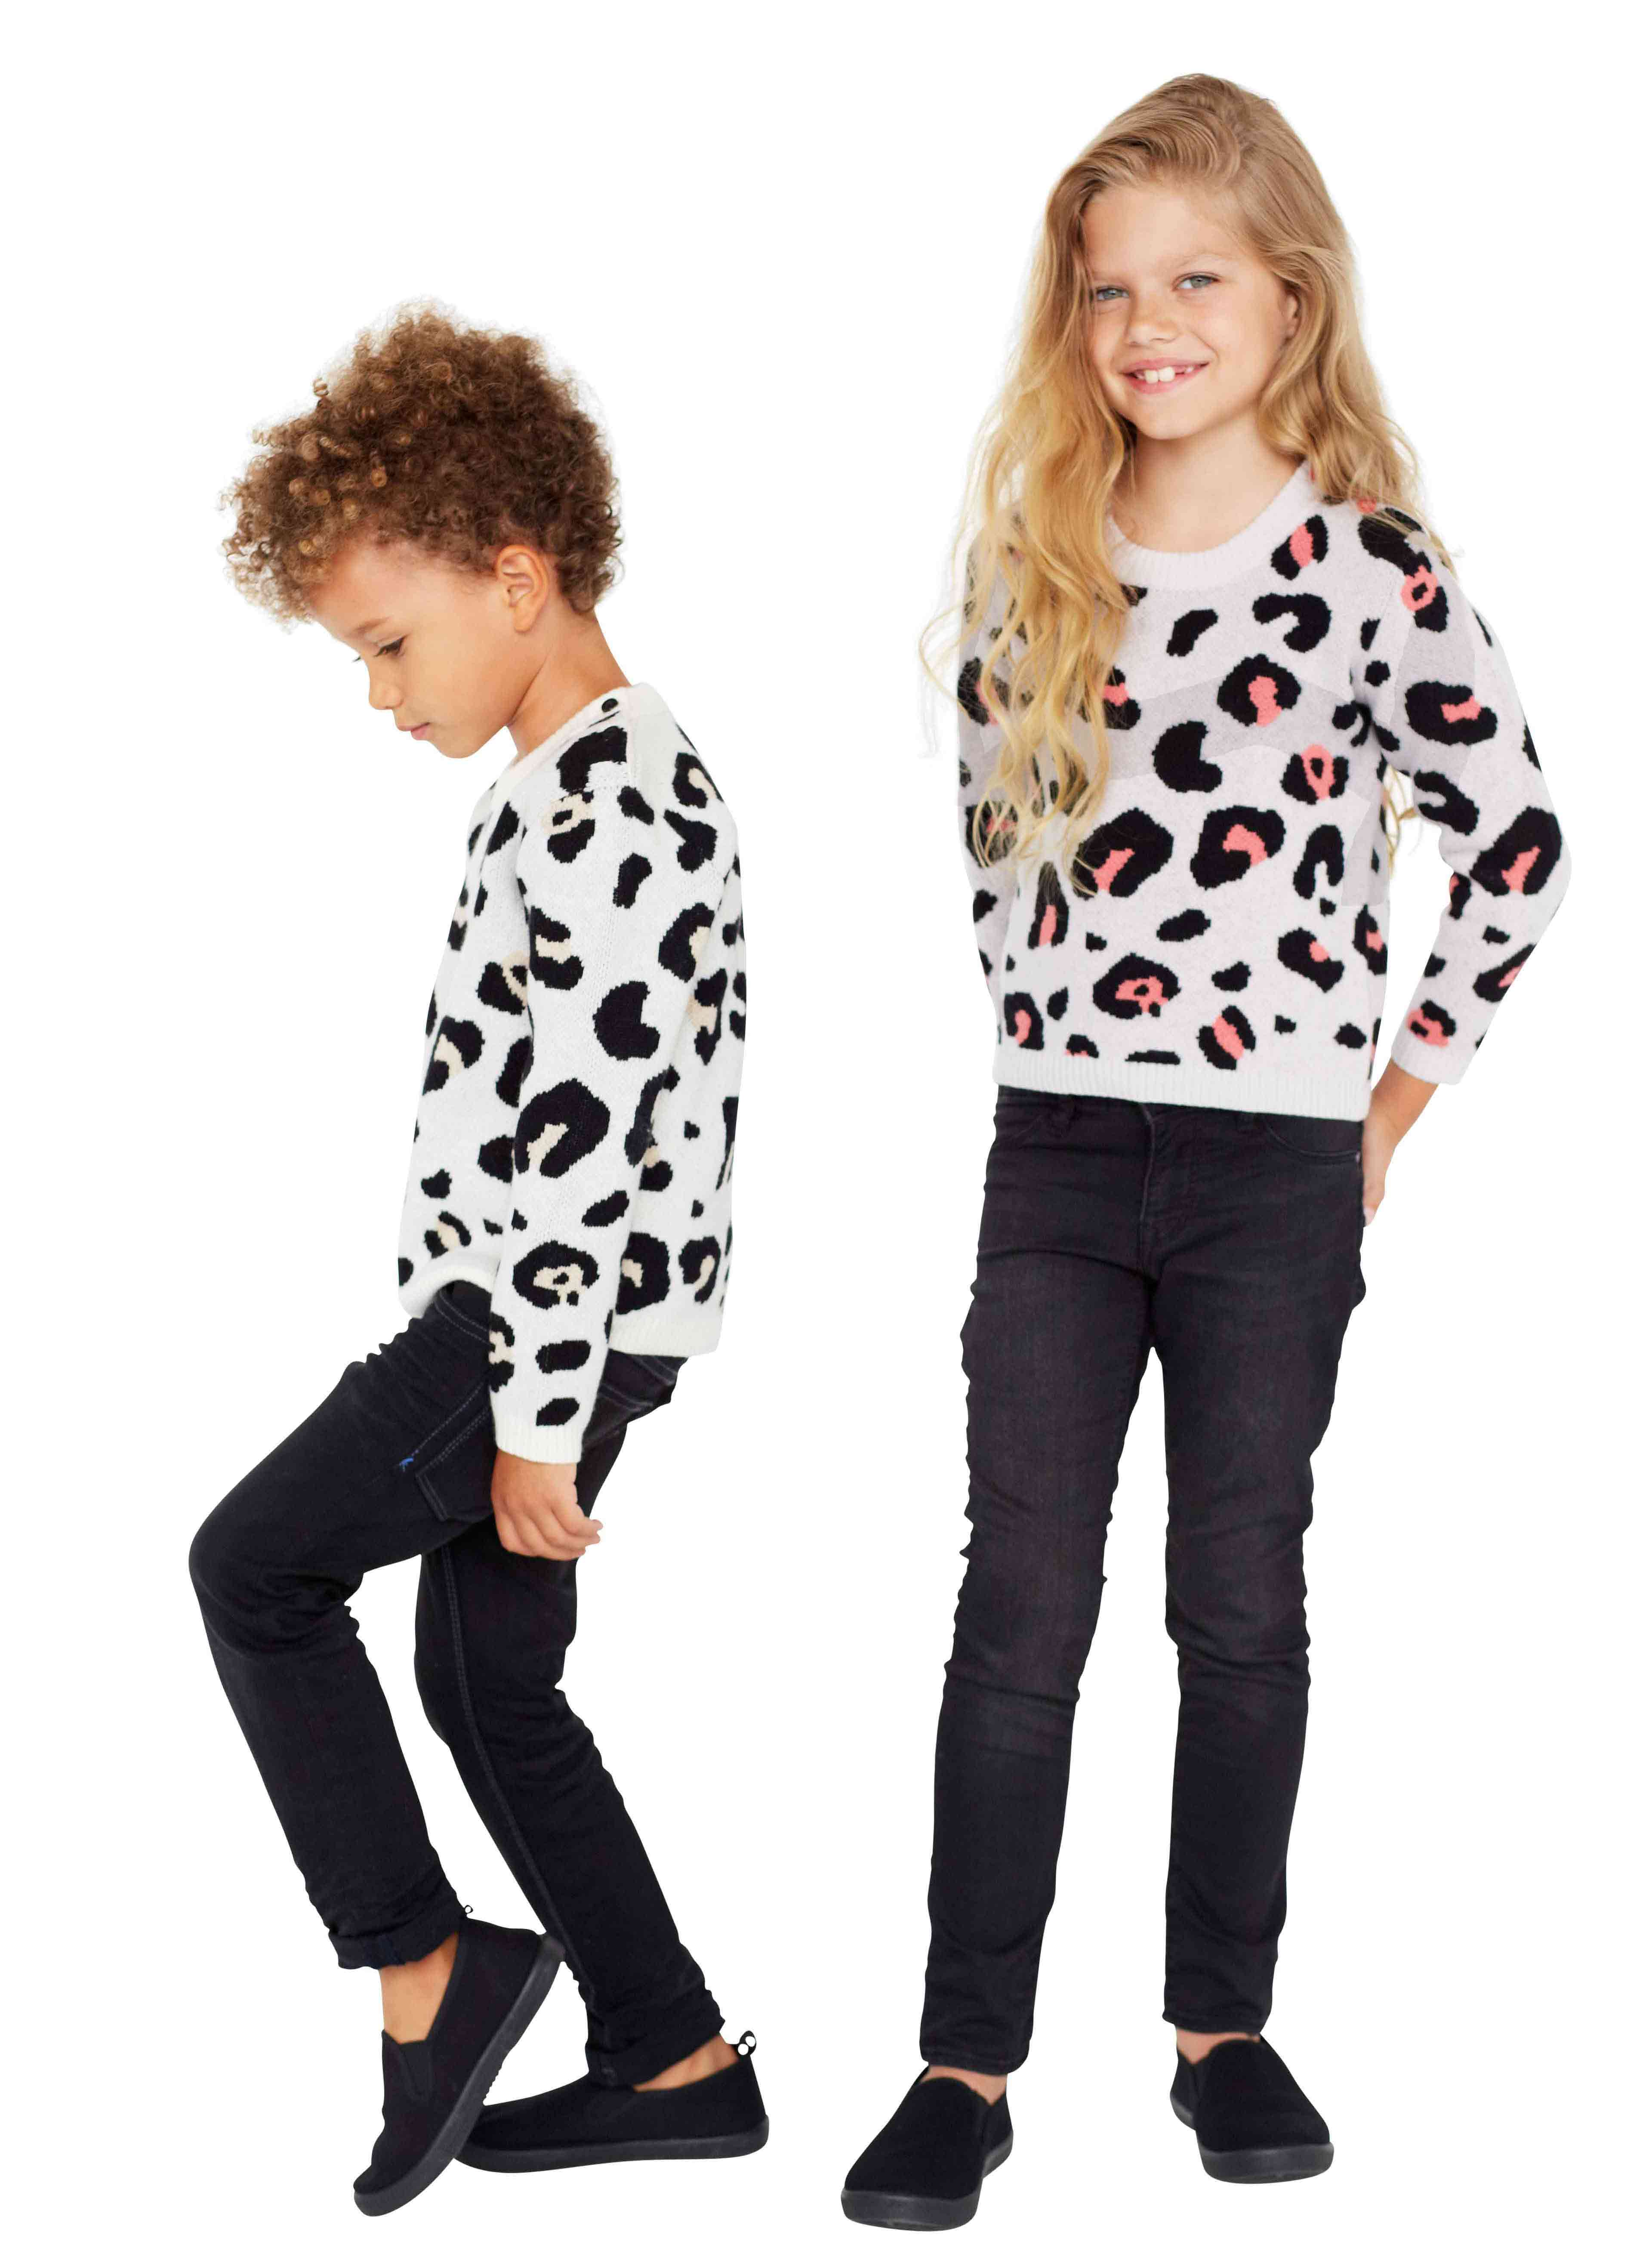 Atelier-Child_FW15_The-Leopard-Sweaters_Hi-Res_Deepetched